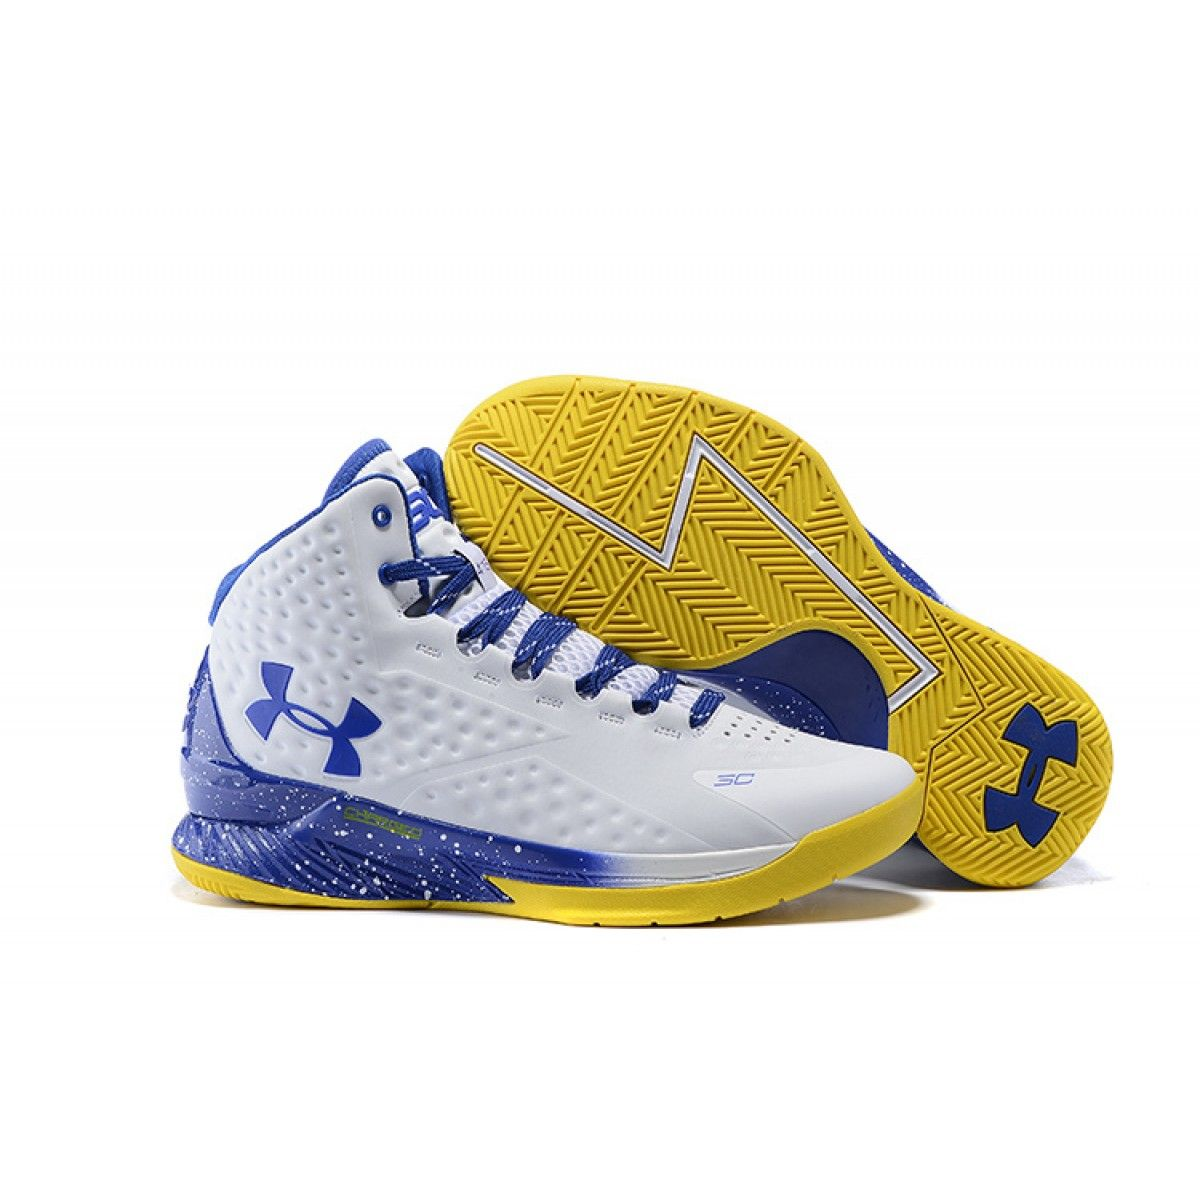 low cost e37e9 72b2c Under Armour Curry One Playoff Basketball Shoes Blue White